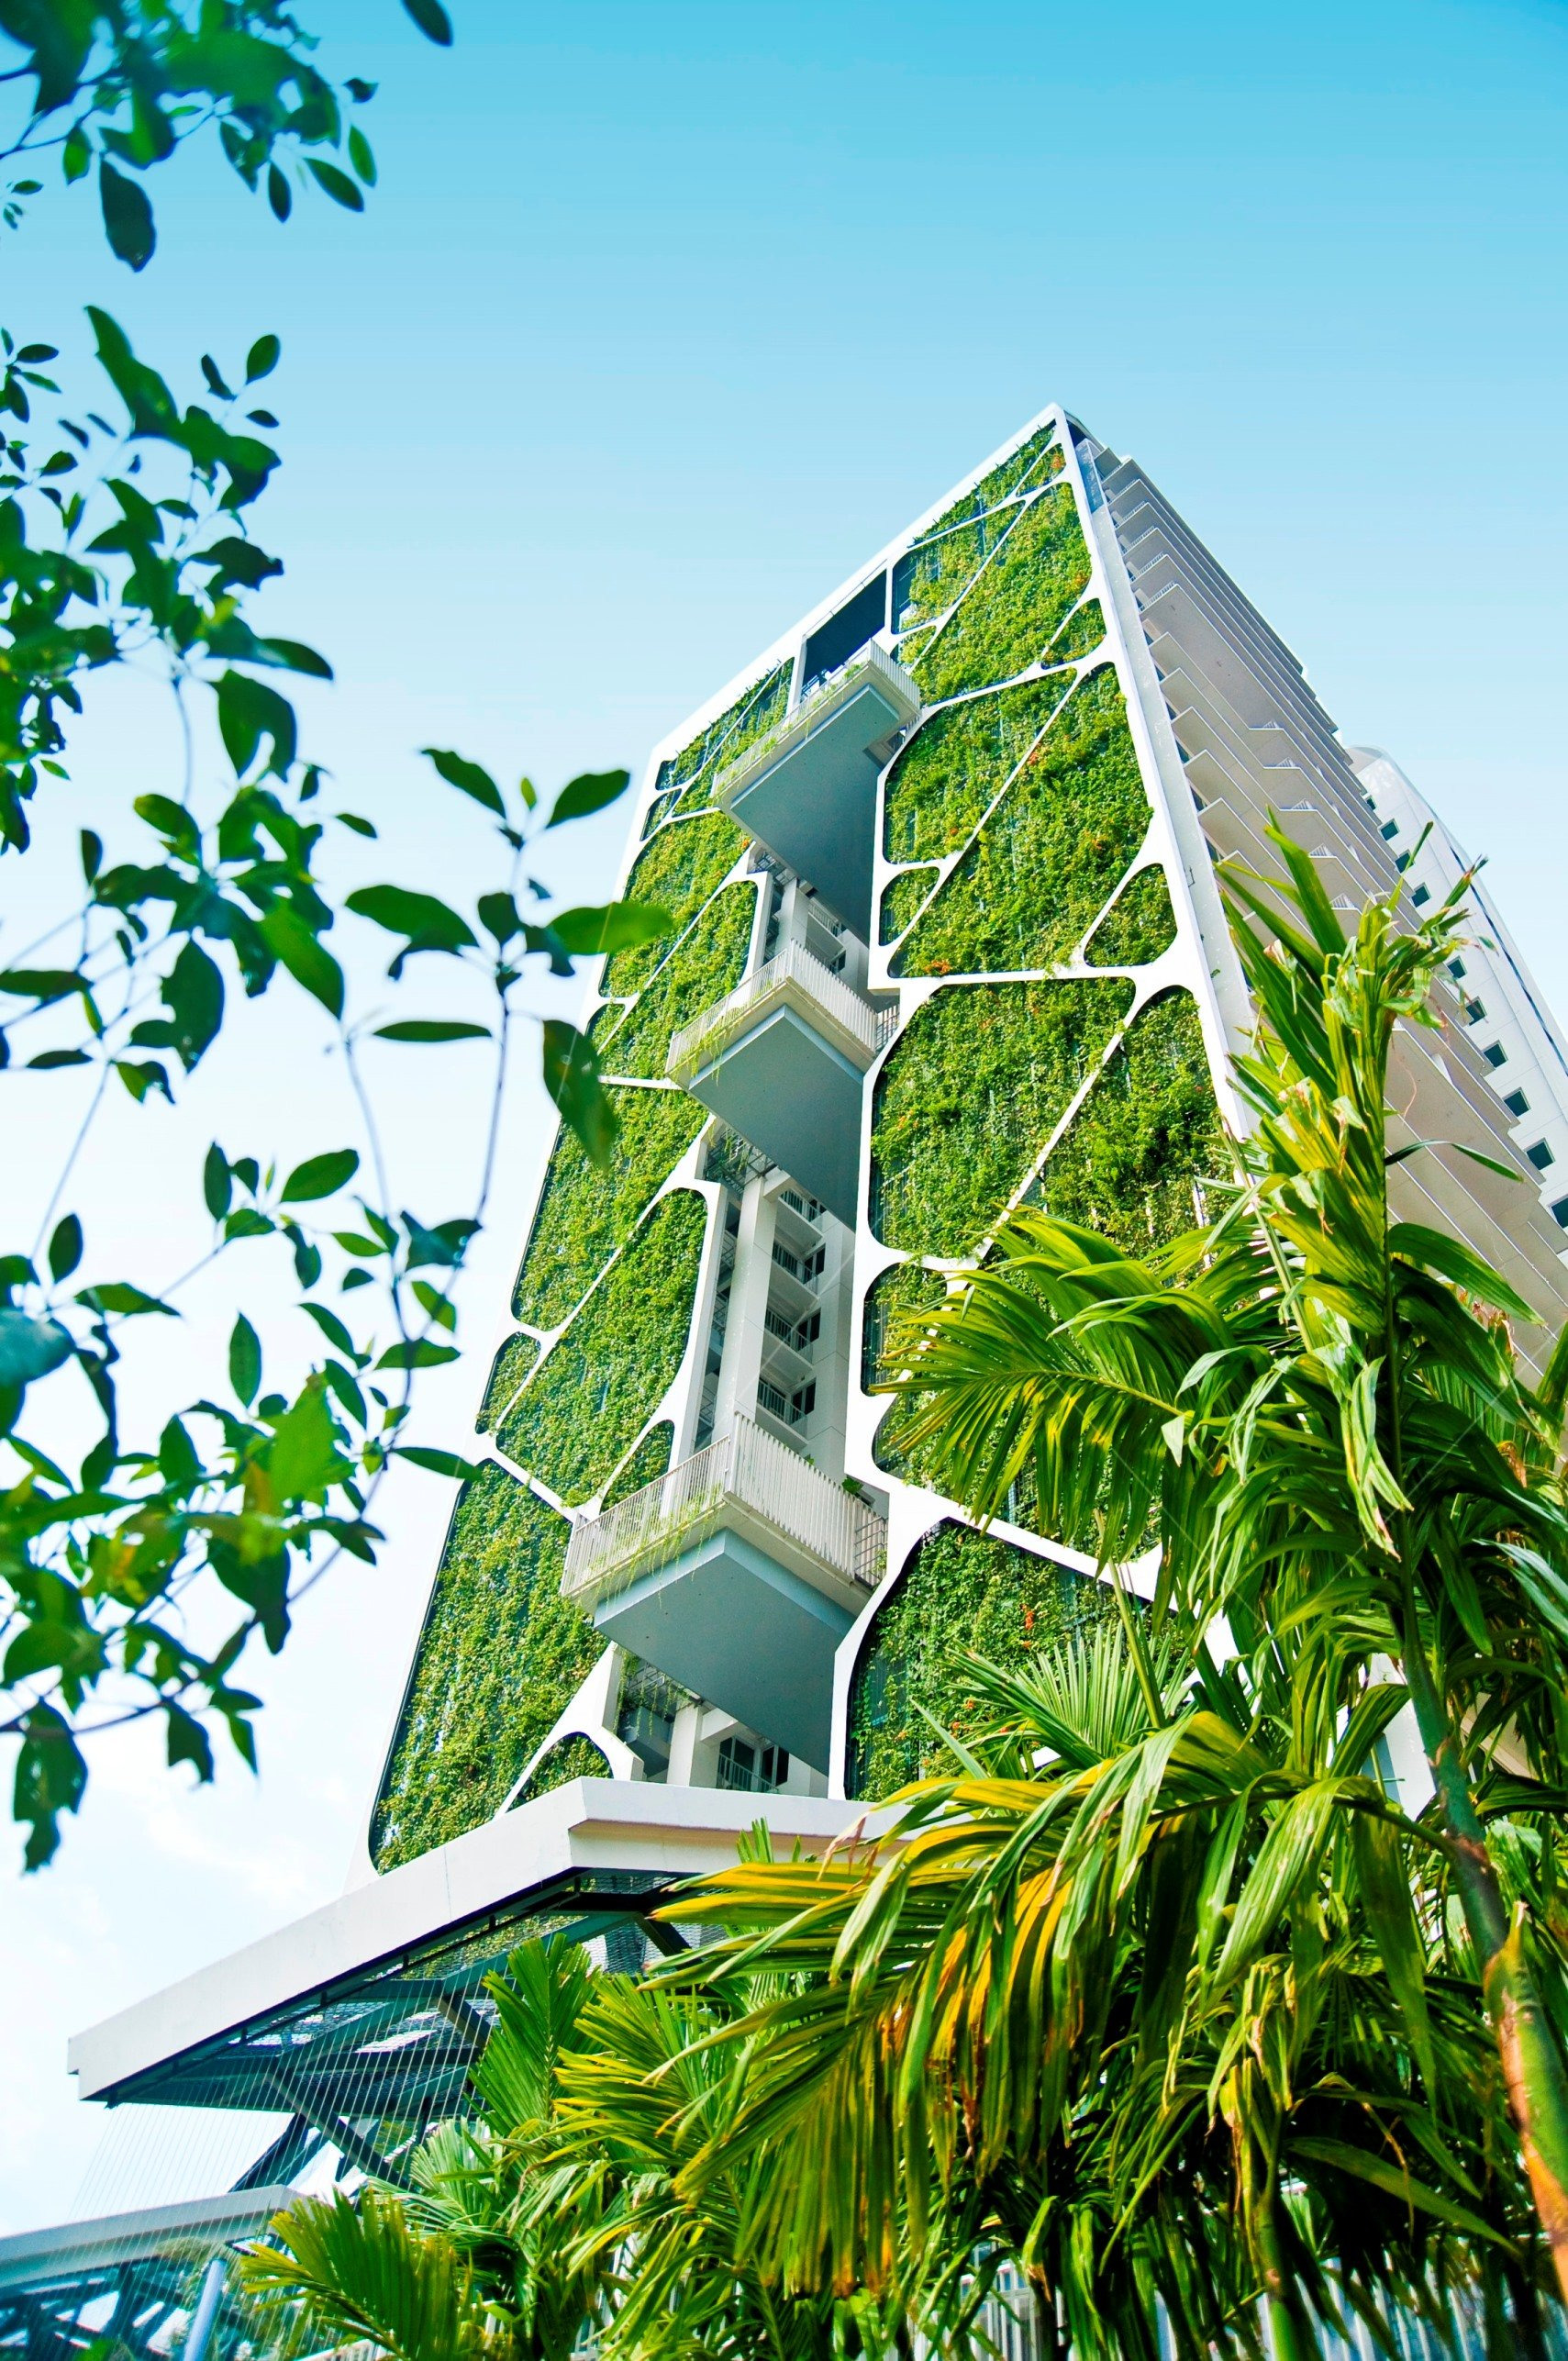 The Most Amazing Houses Beautiful Green Streets How Plantlife is Inspiring Modern